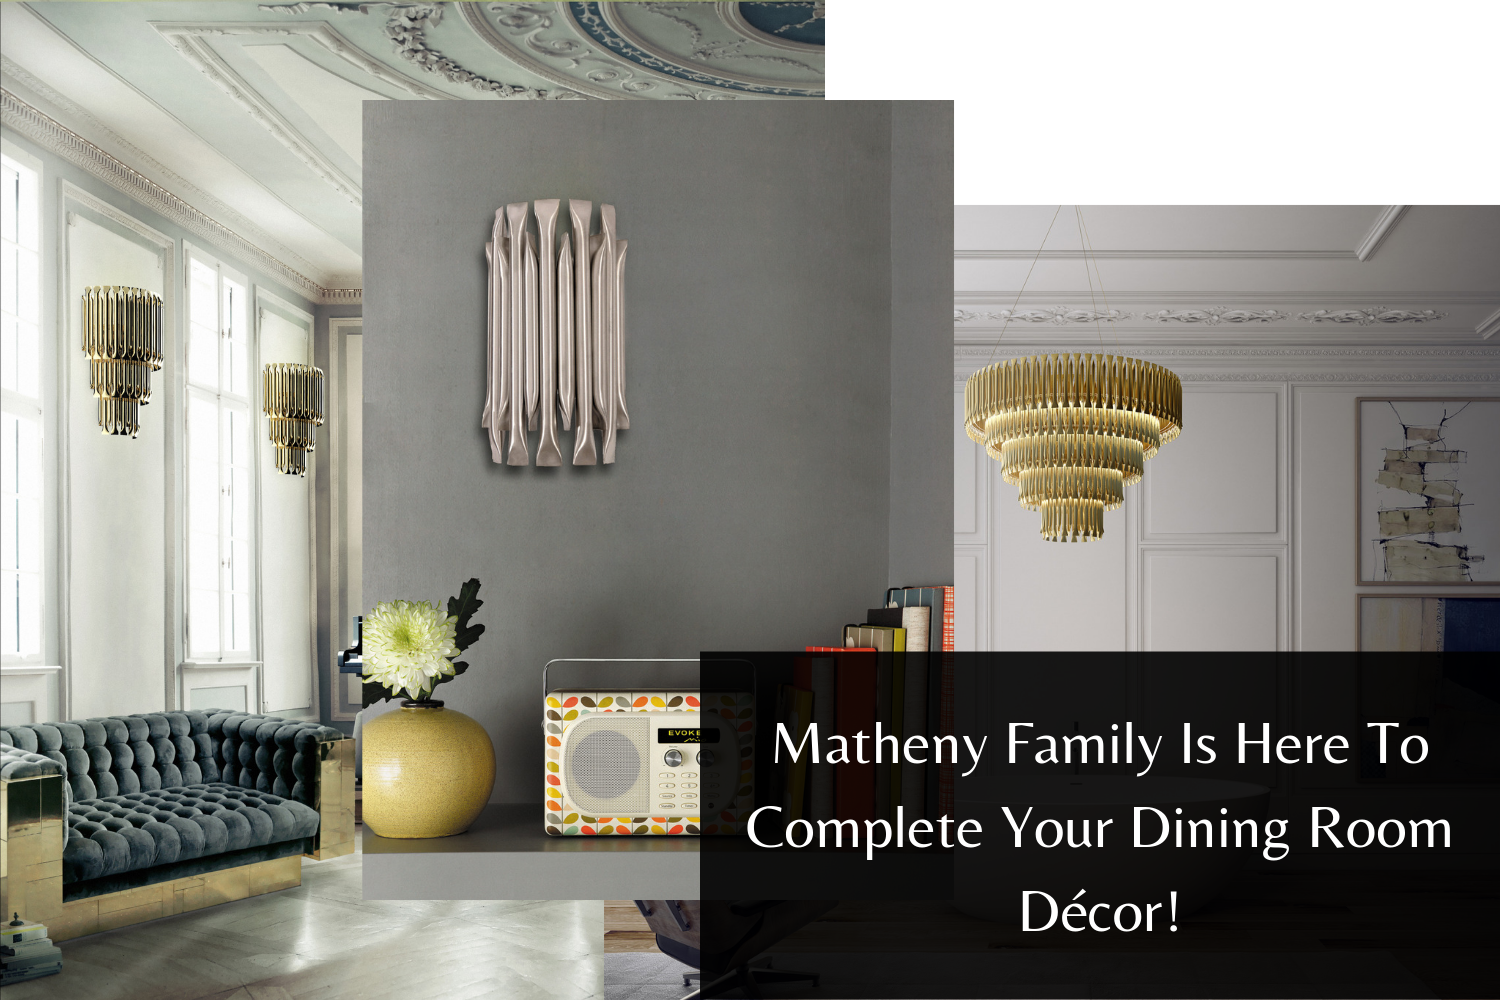 Matheny Family Is Here To Complete Your Dining Room Décor!